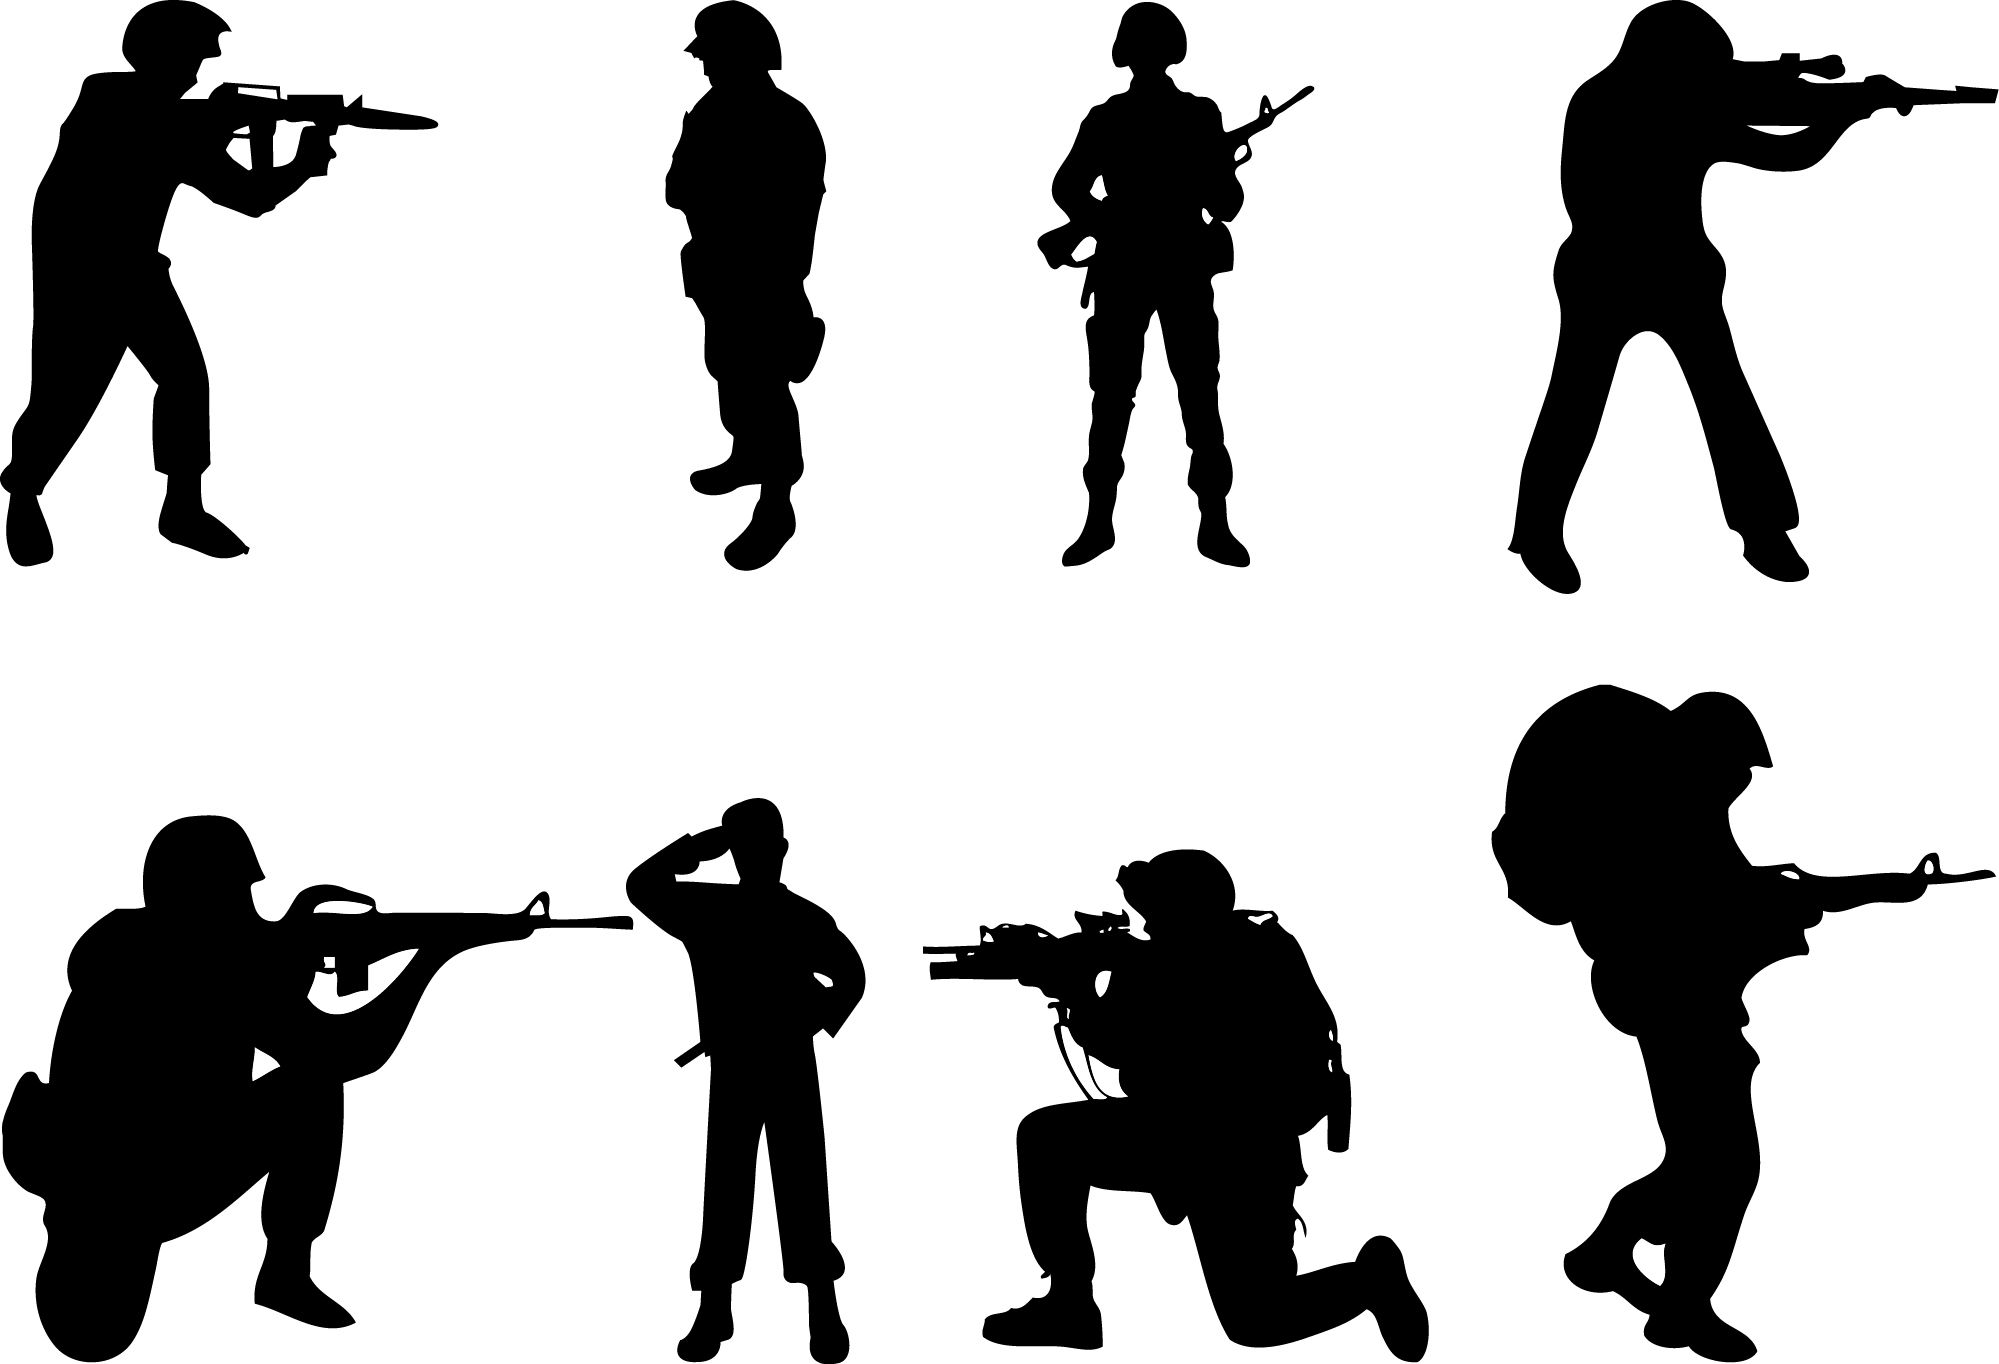 Soldier silhouettevector net people. Army clipart silhouette